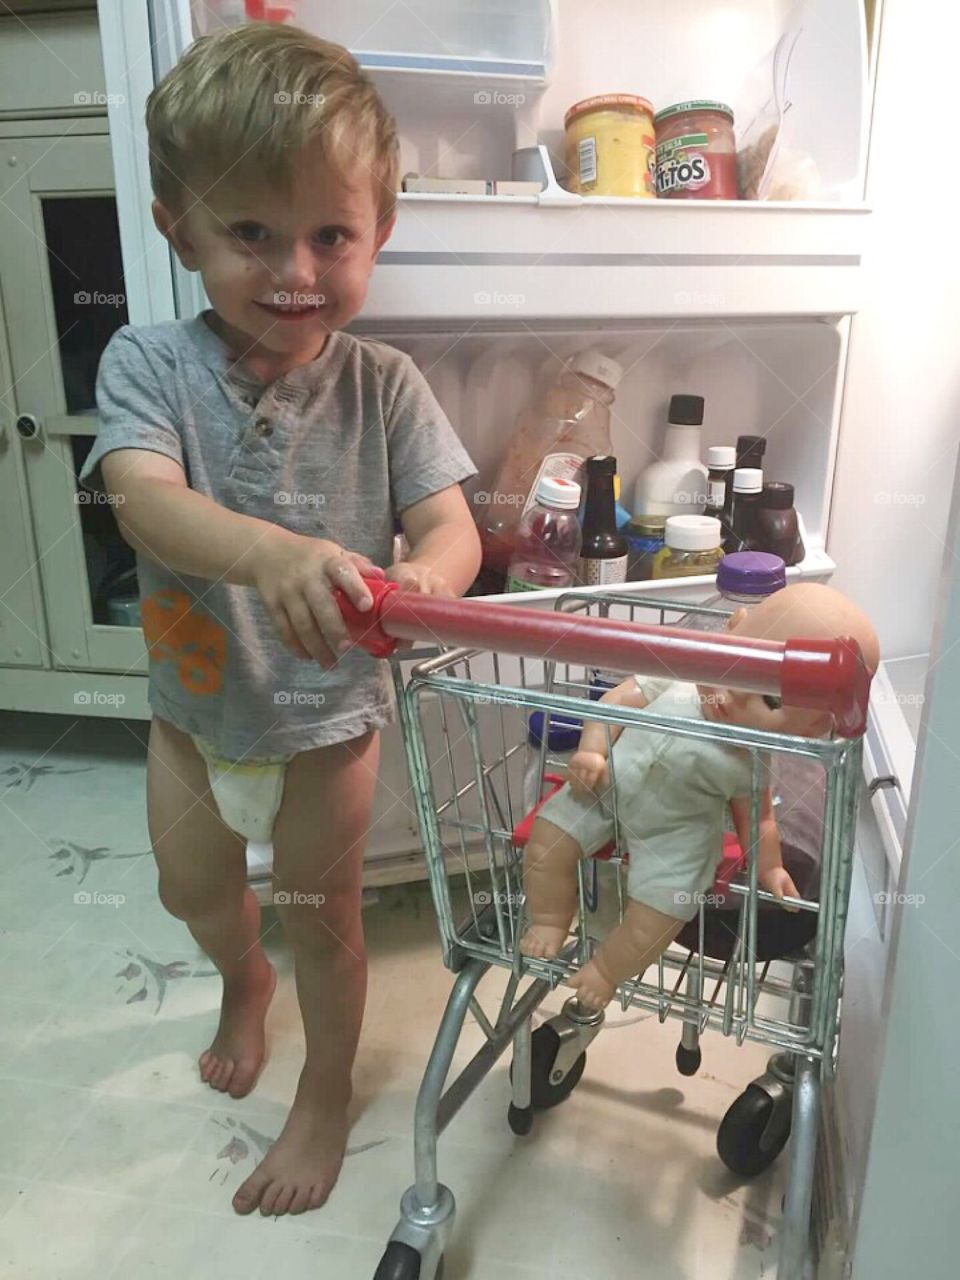 Little boy taking his baby shopping out of the refrigerator.